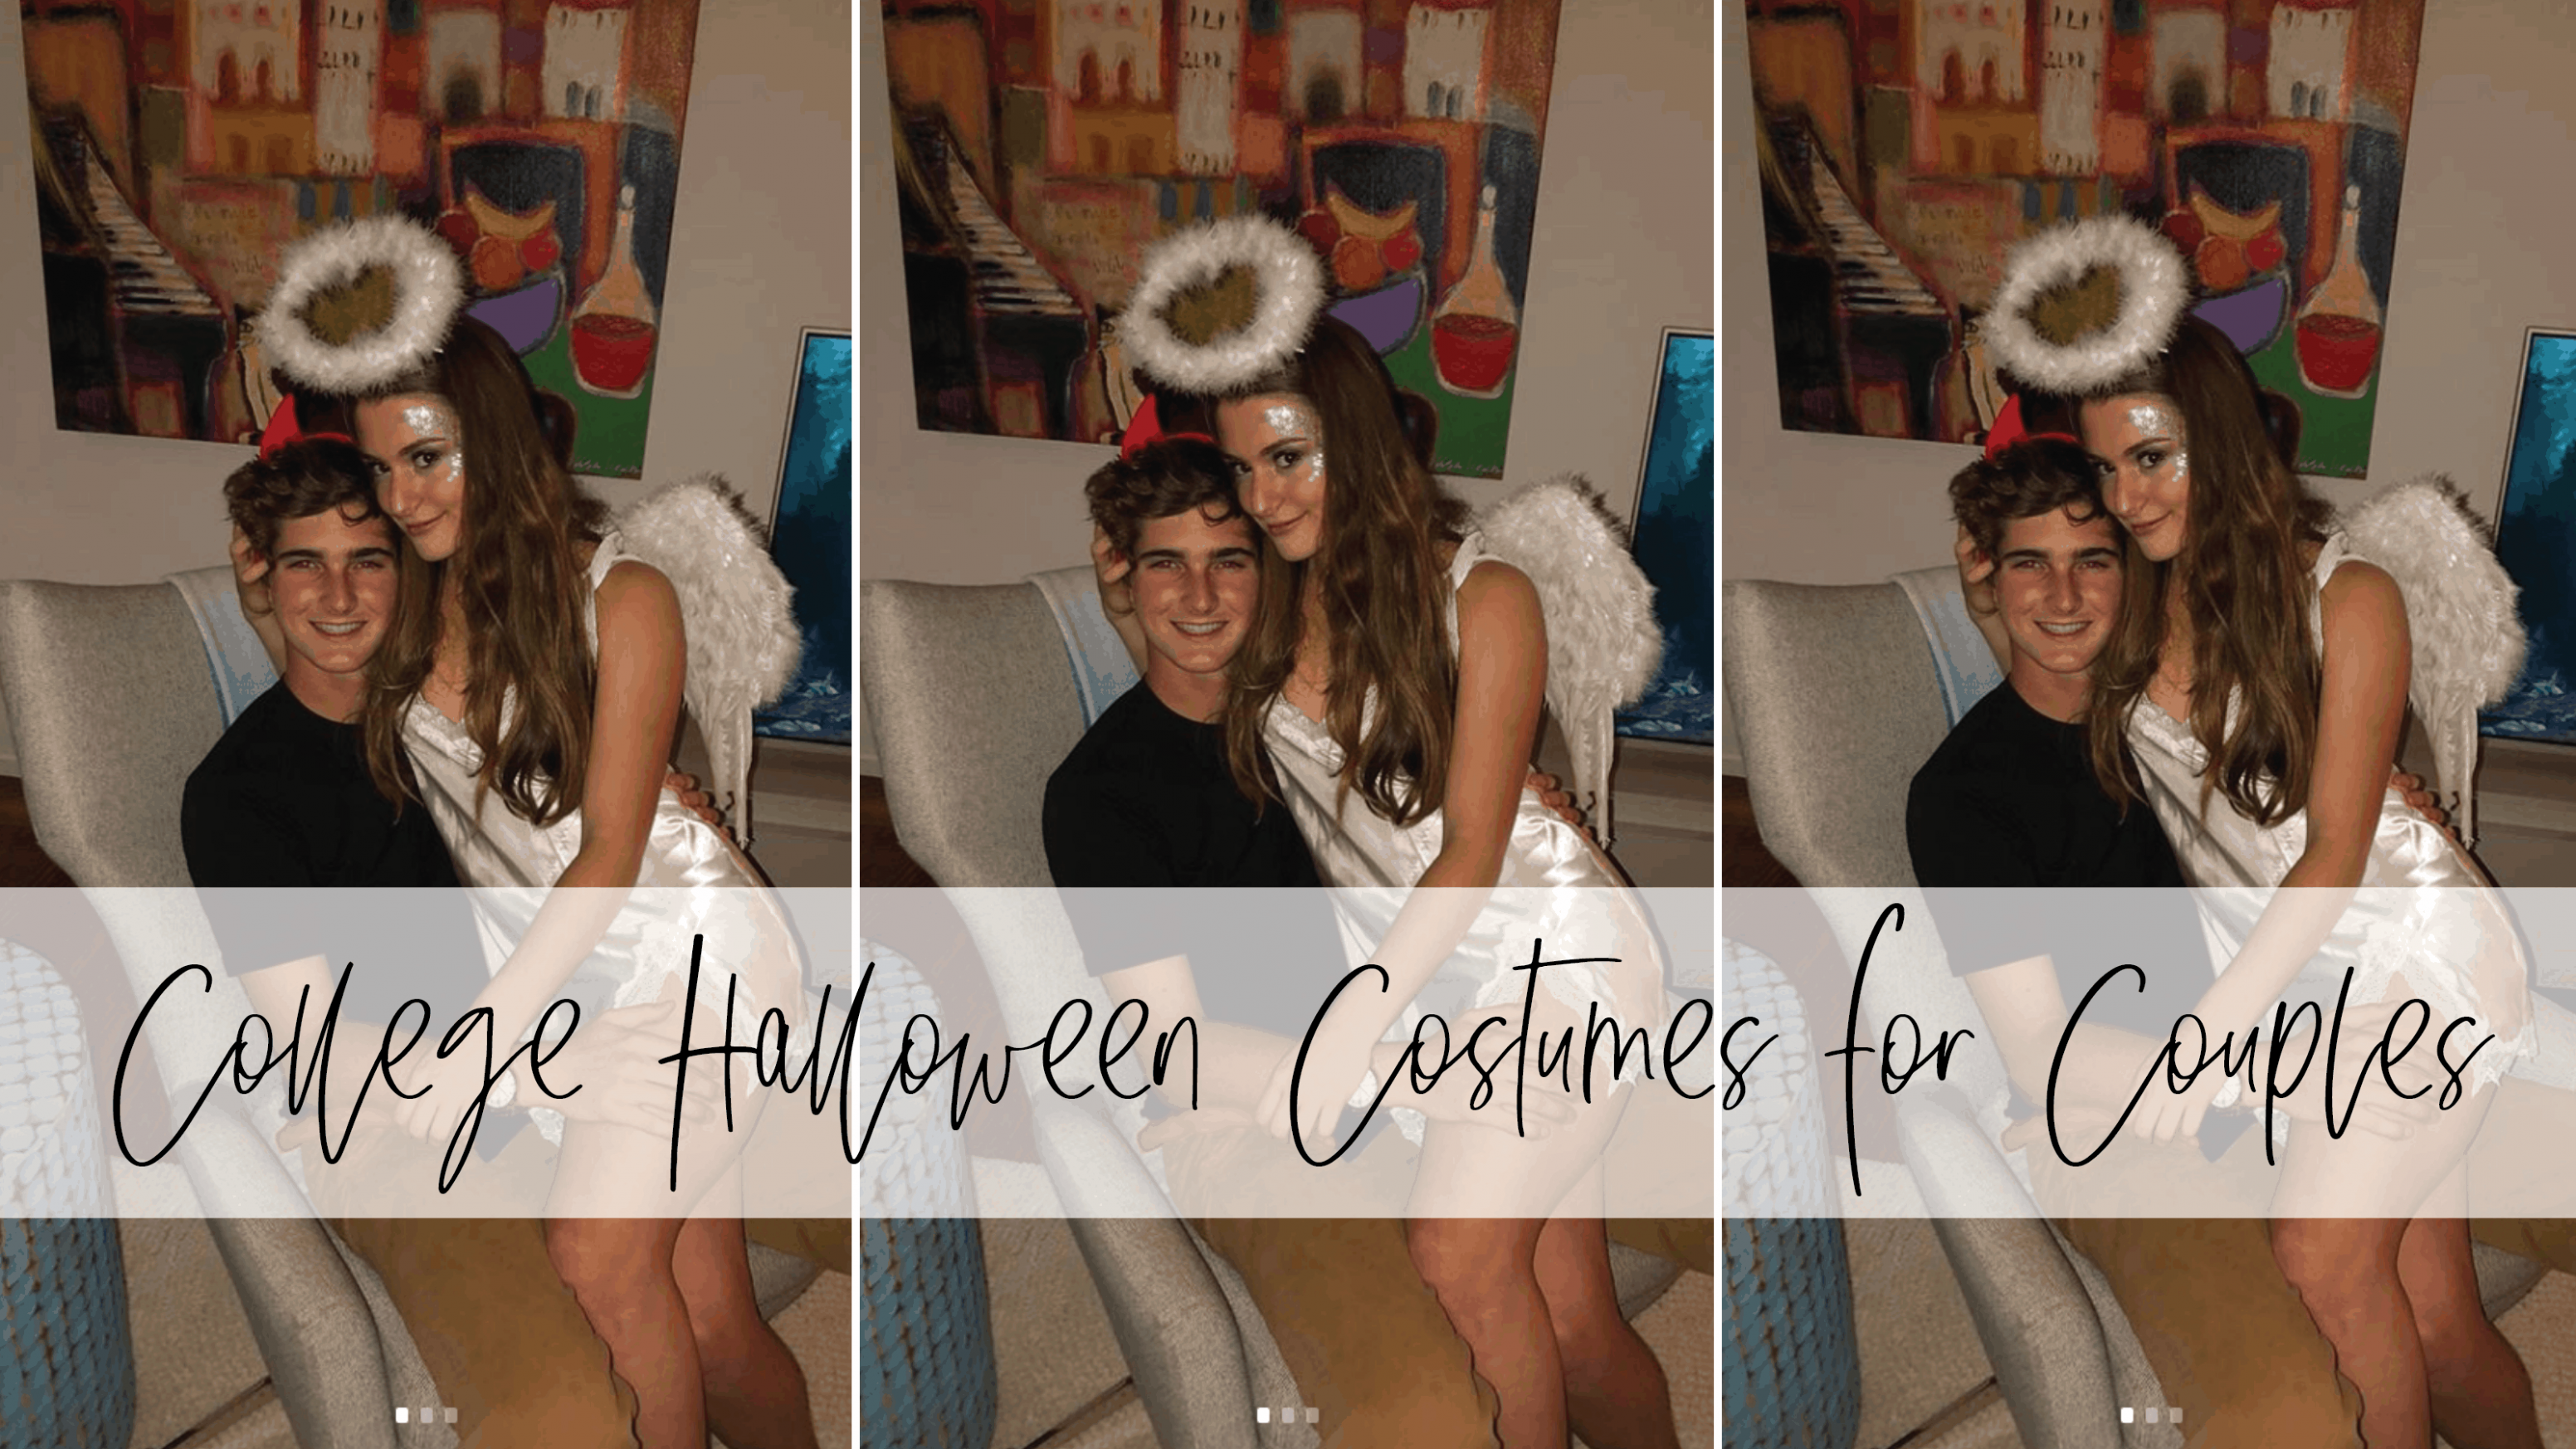 10 Best College Costume Ideas for Couples - By Sophia Lee